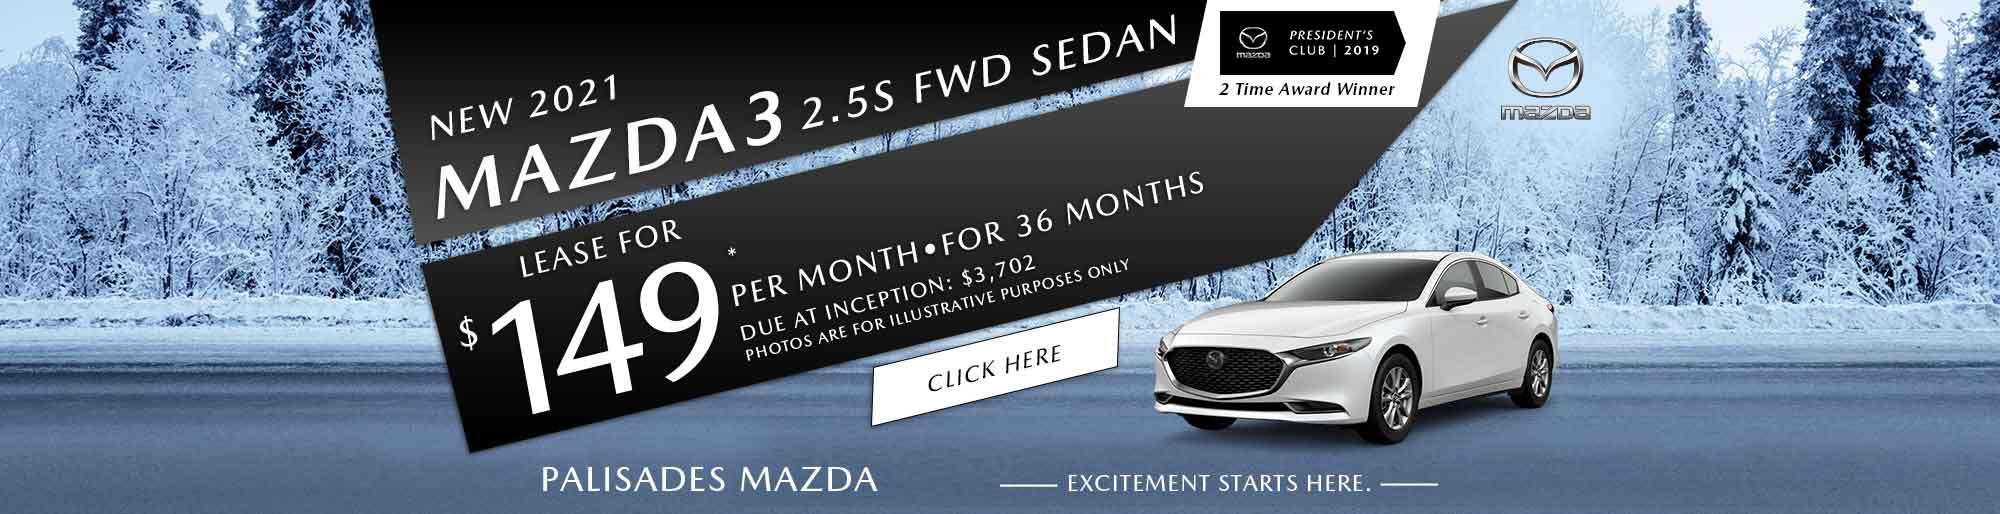 Mazda3 lease deal image